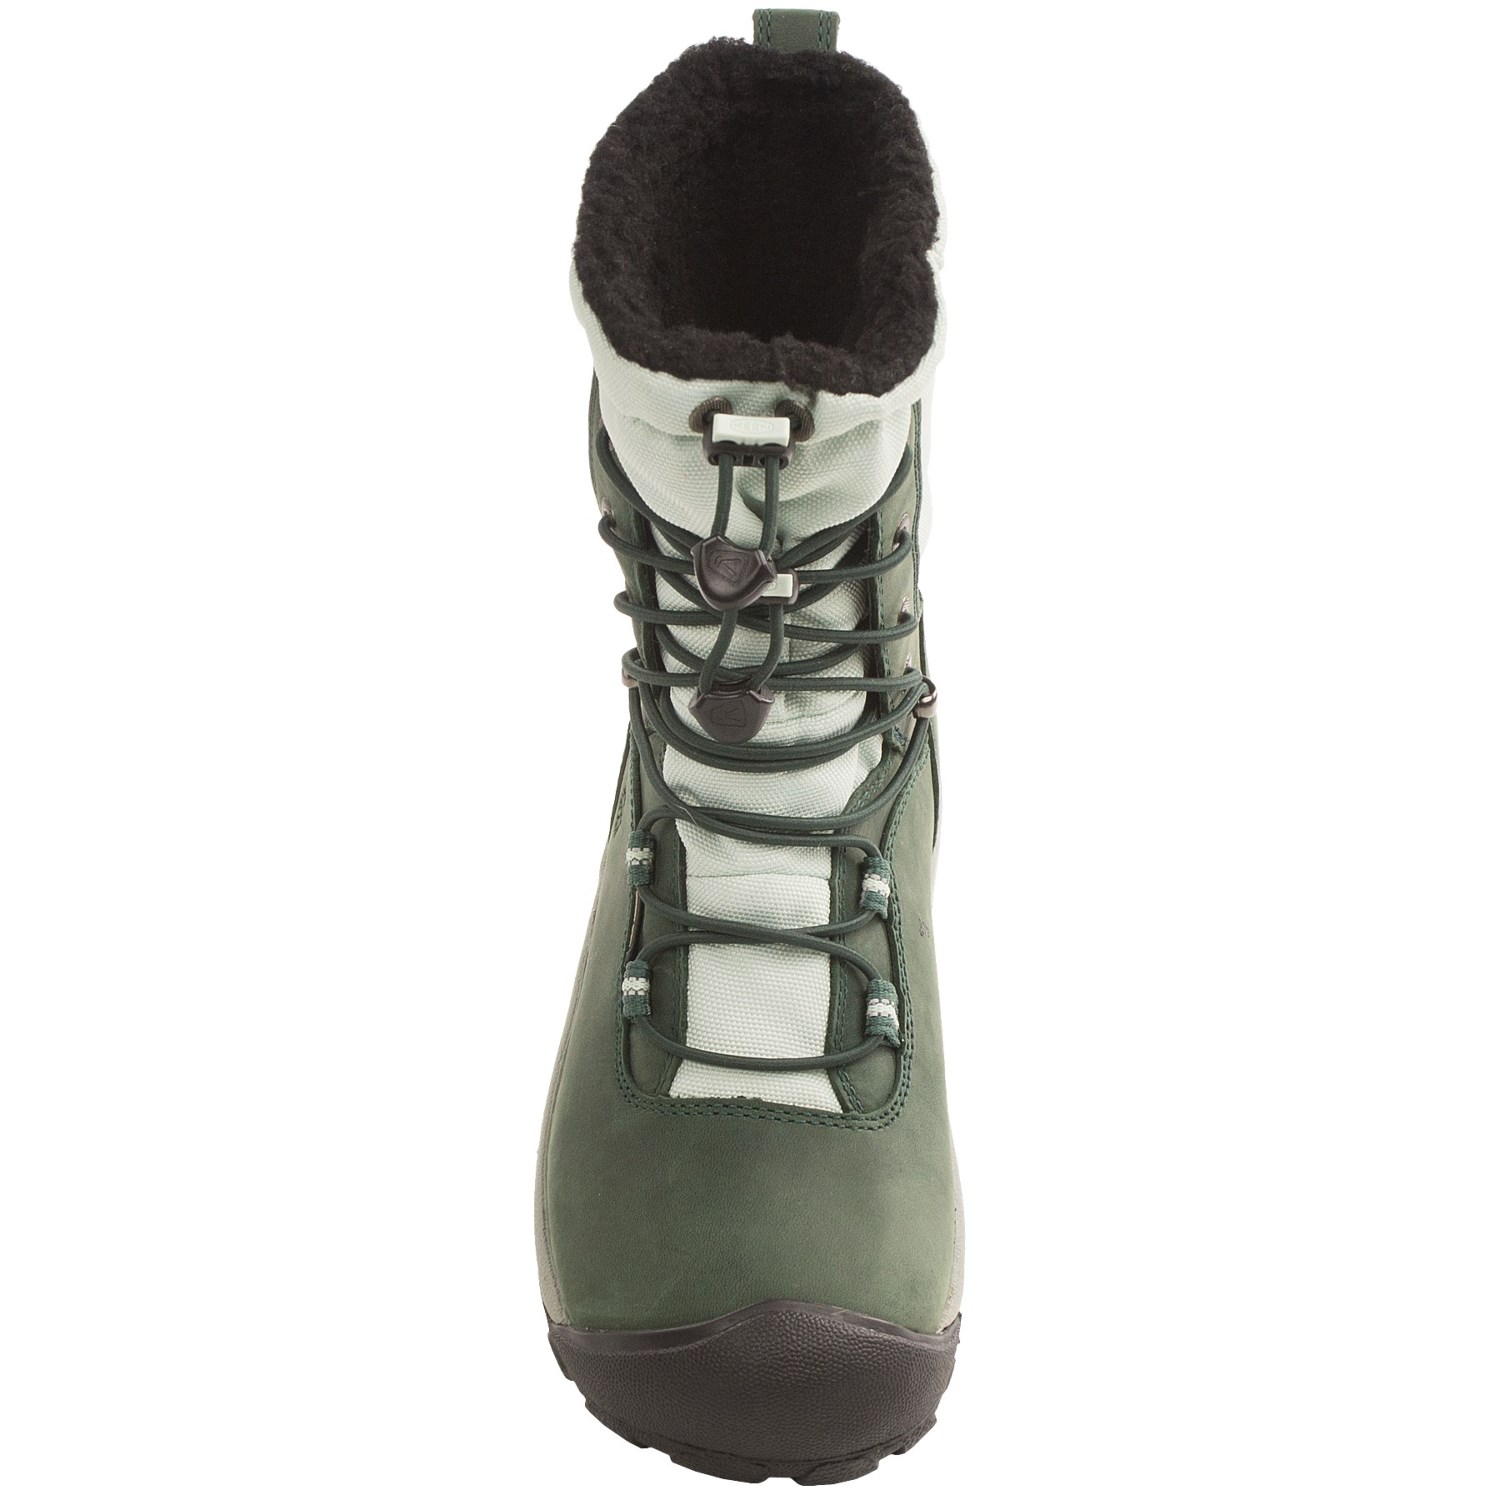 Beautiful Keen Betty Boot Snow Boots (For Women) 1690V - Save 77%